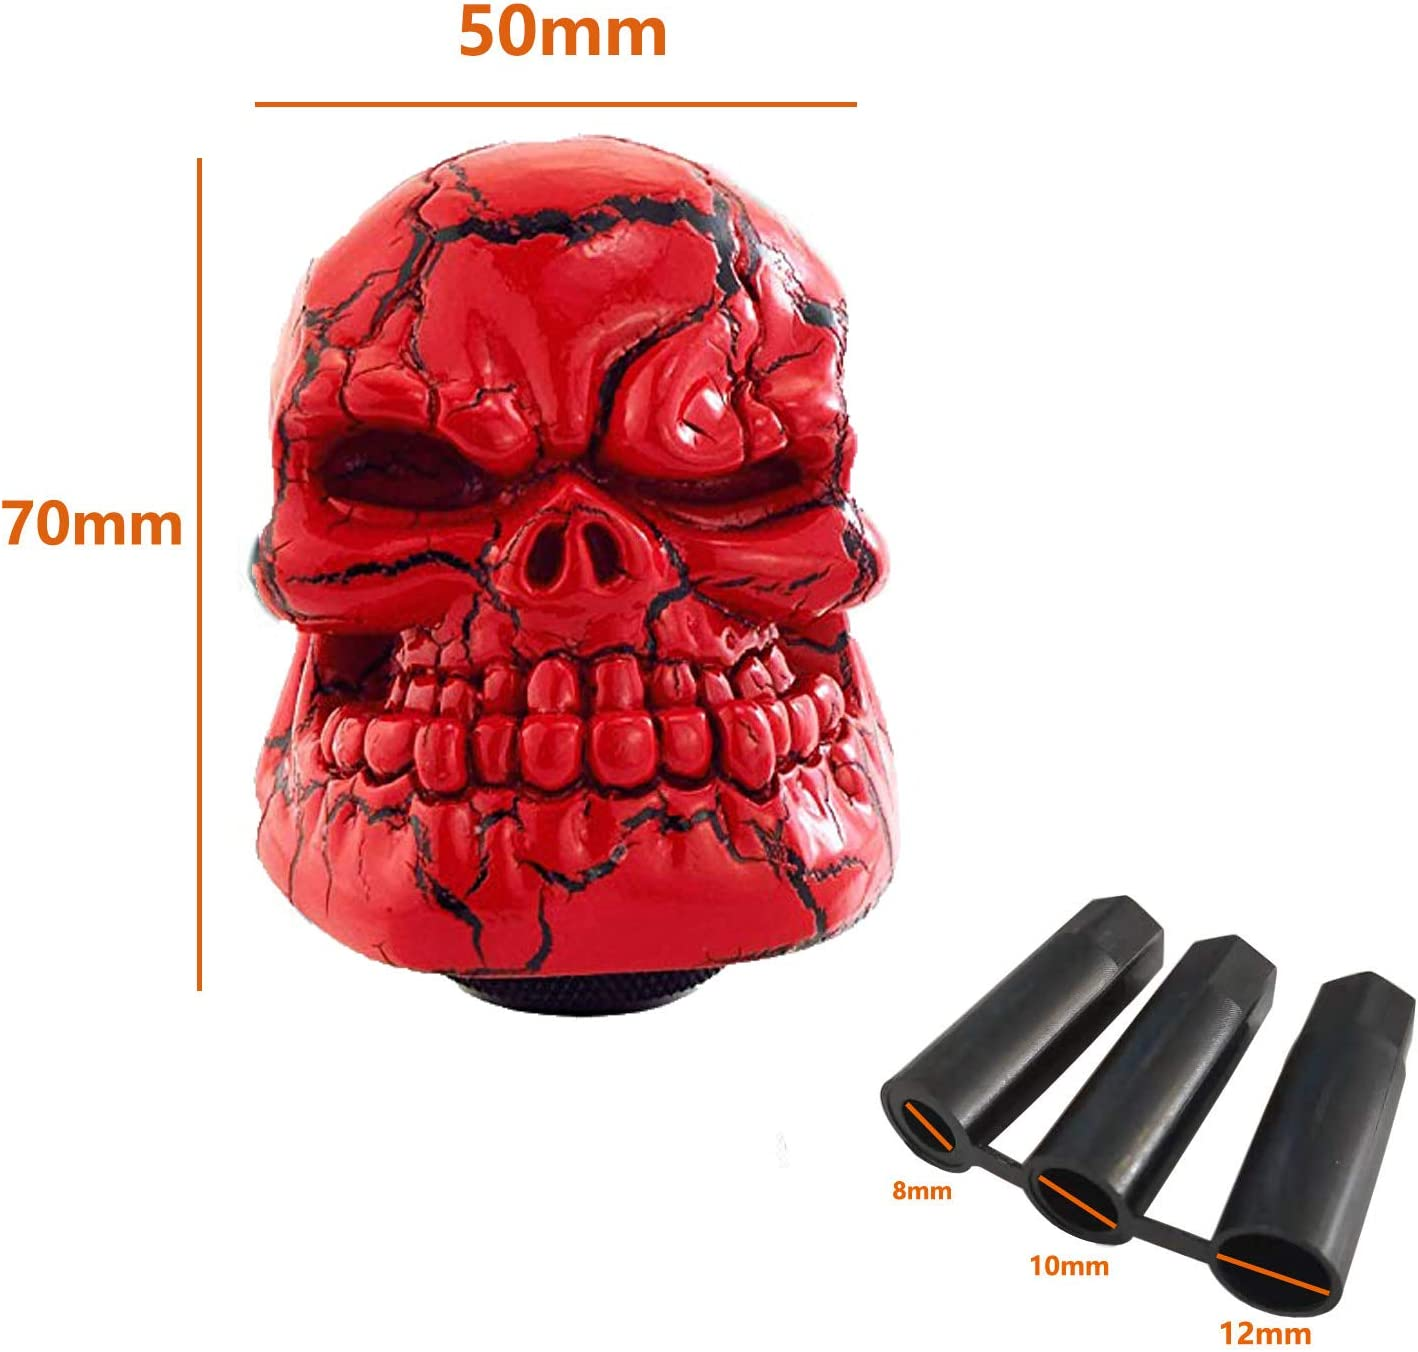 Metal Blue Lunsom Skull Shift Knobs Resin Shifter Head Universal Car Transmission Shifting Stick Handle Fit Most Automatic Manual Vehicle